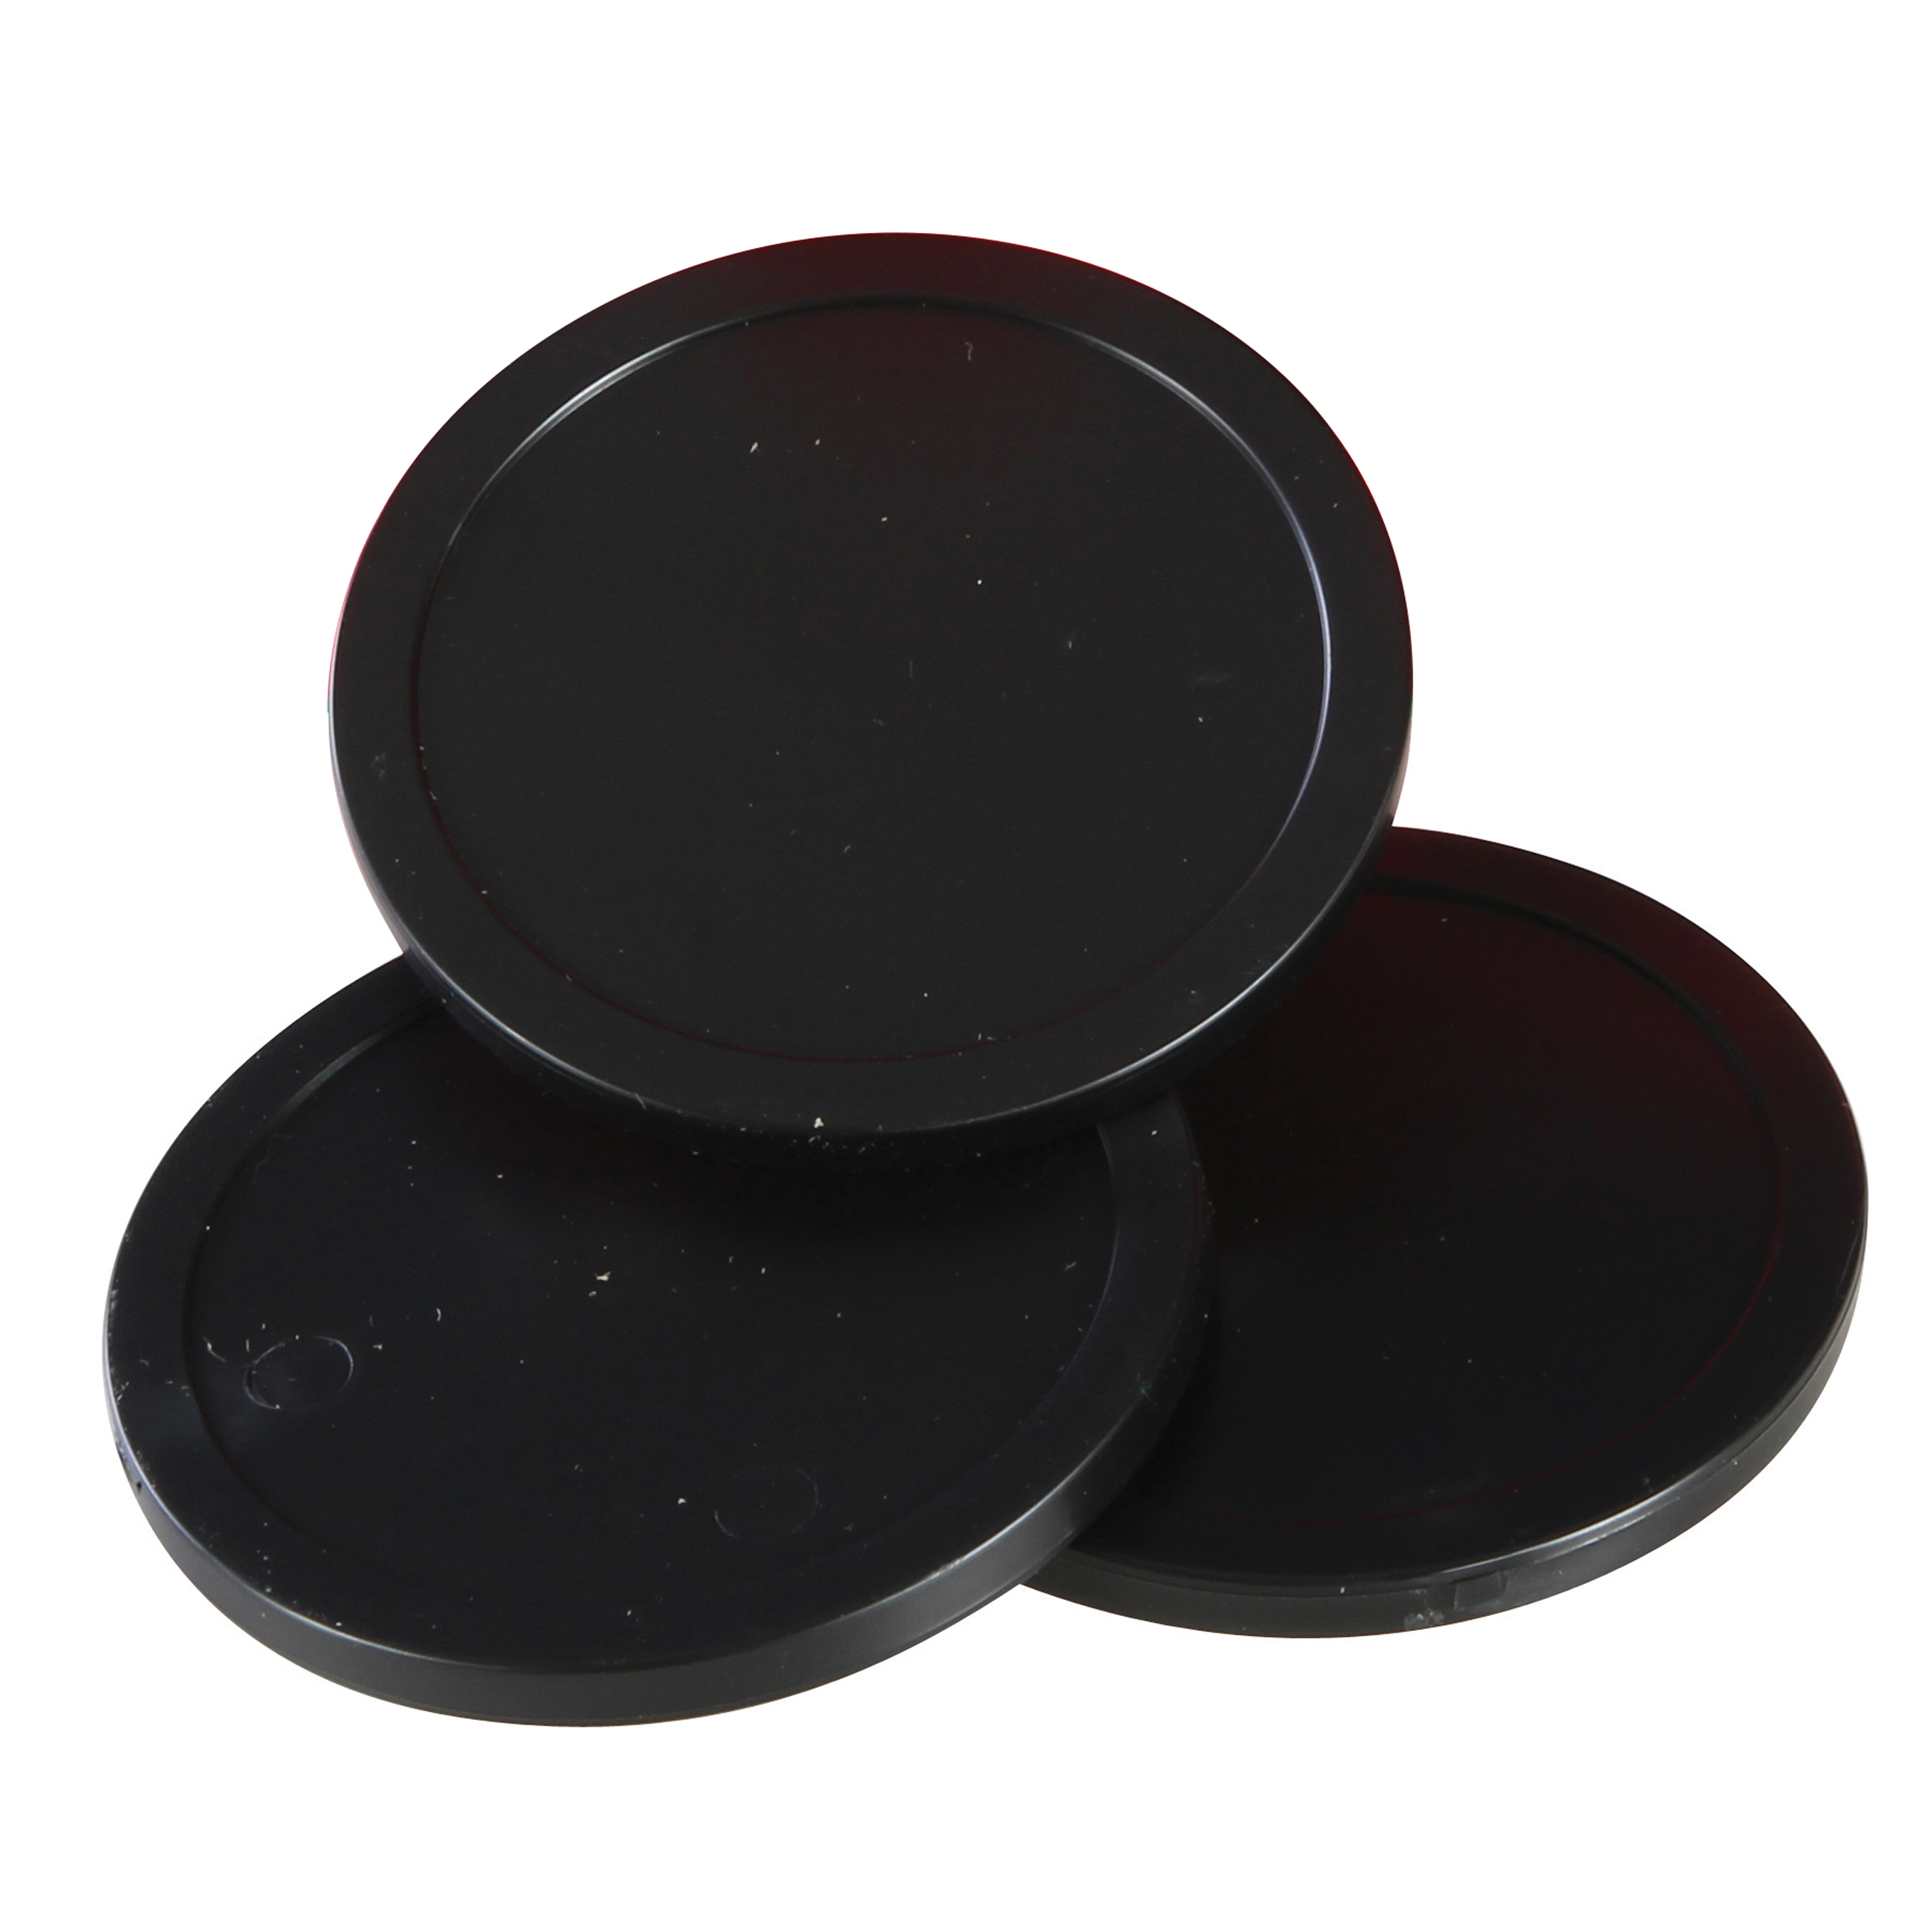 Redline Air Hockey Replacement Puck Set with One Octagonal Puck and Two Circular Pucks, 3-Pack im test